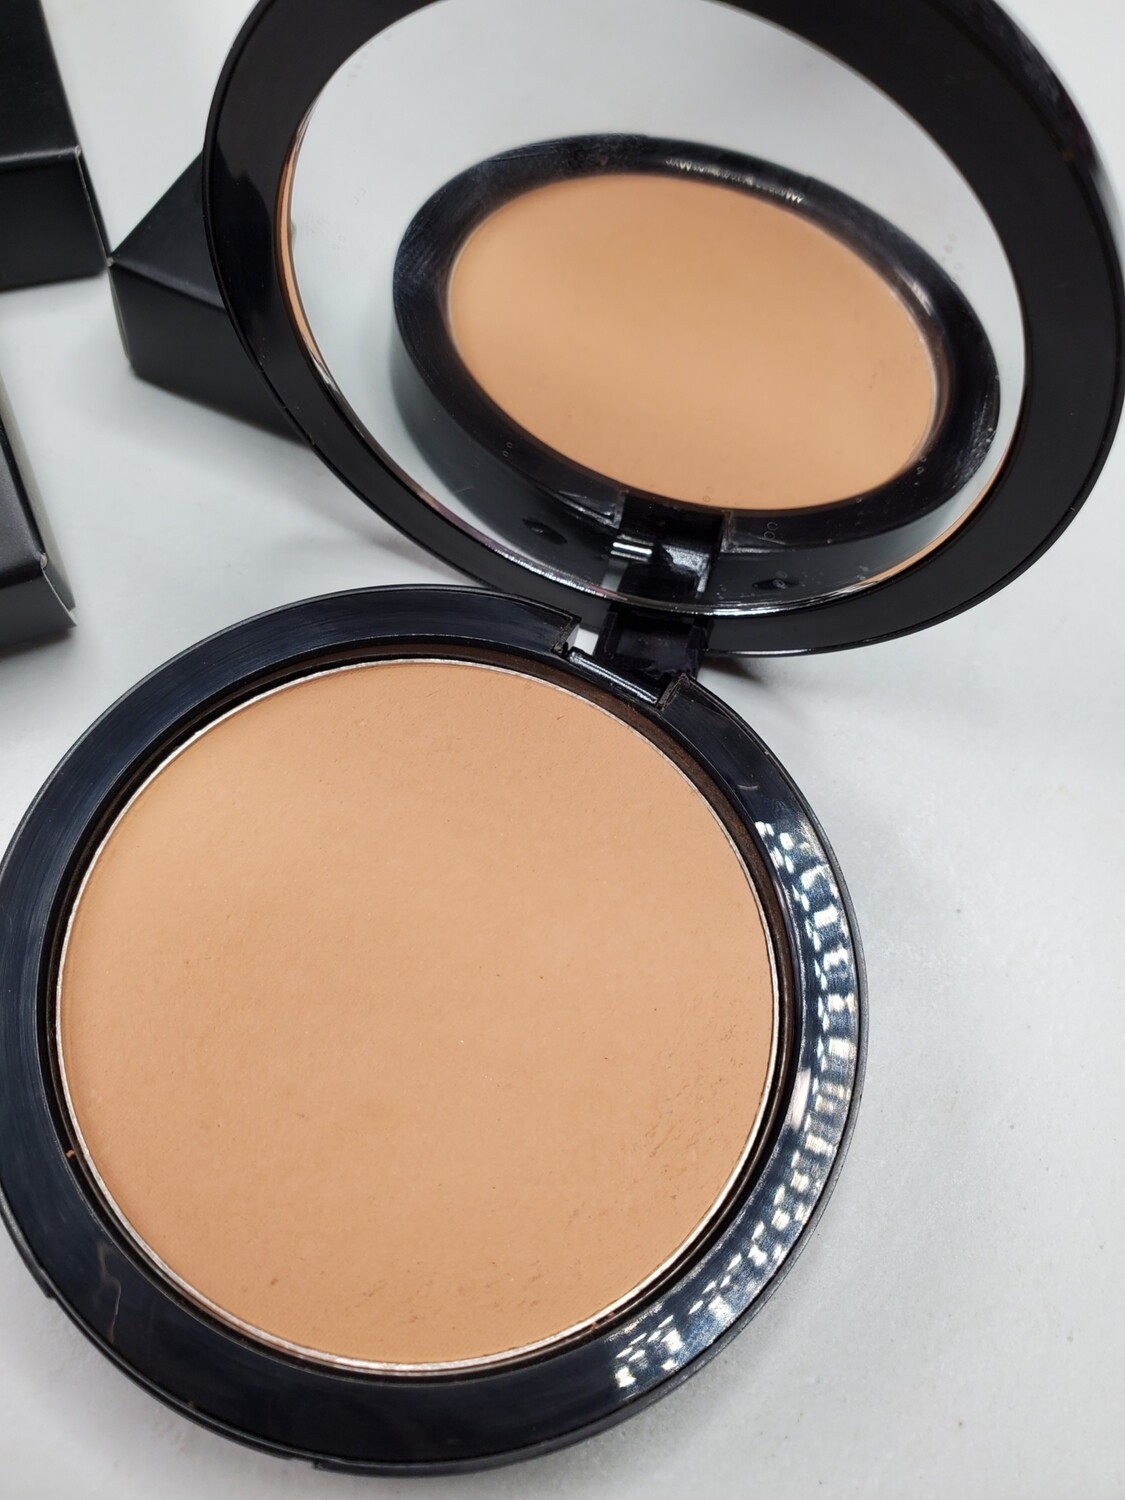 Edmondson - Dual Blend Multi-Use Foundation/Contour/Bronzing Powder